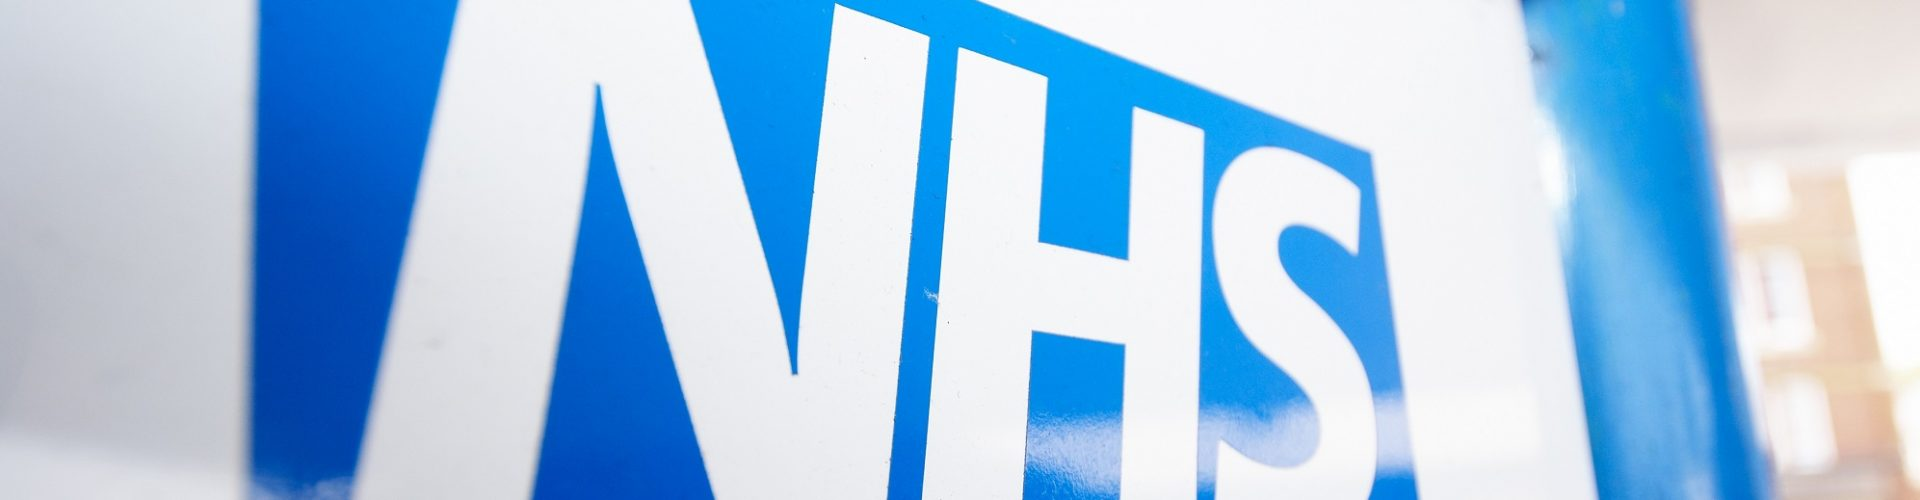 Undocumented Migrants are closed off from NHS services